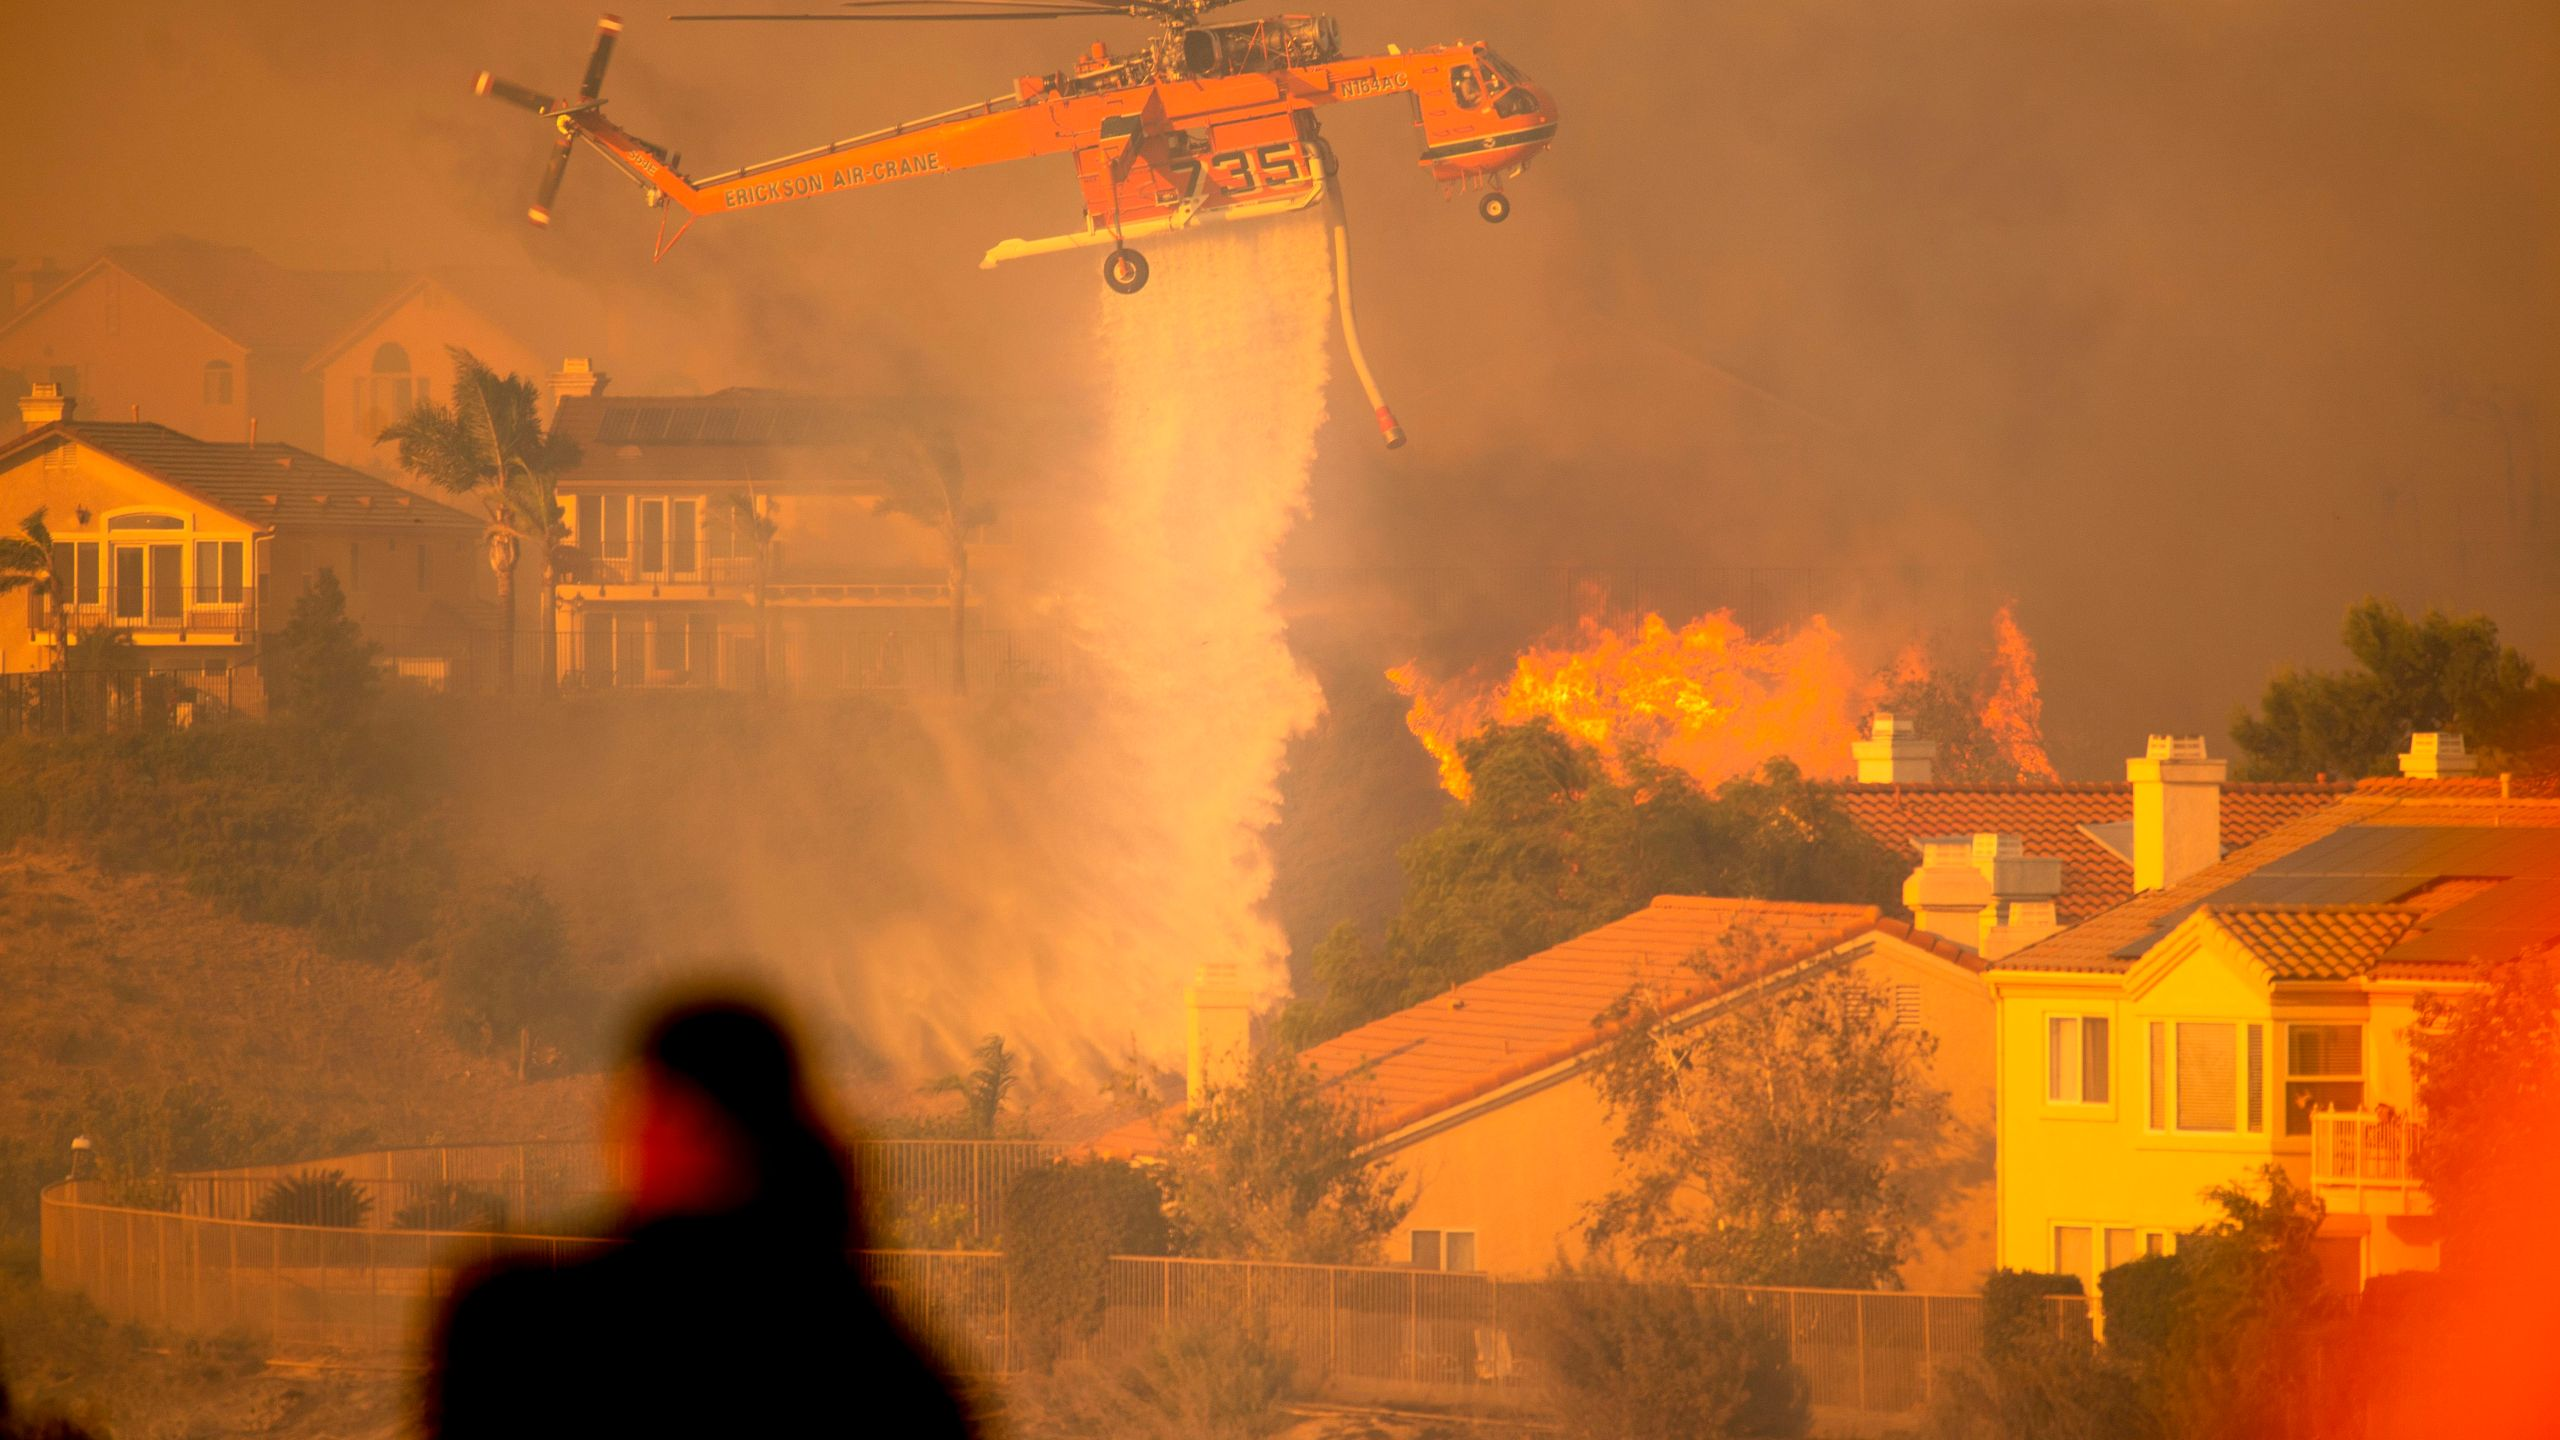 A helicopter drops water to help fight flames as the Saddleridge Fire moves through Porter Ranch on Oct. 11, 2019. (Credit: Josh Edelson / AFP/ Getty Images)